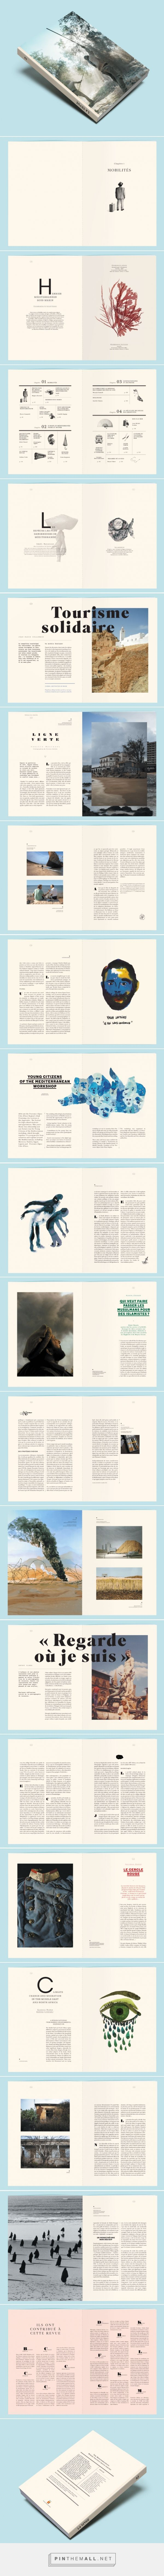 Pretty much LOVE everything about this editorial design. Layout, art direction, illustrative components, drop caps...   Editorial Design Inspiration: La Villa Mediterranée by Violaine & Jeremy